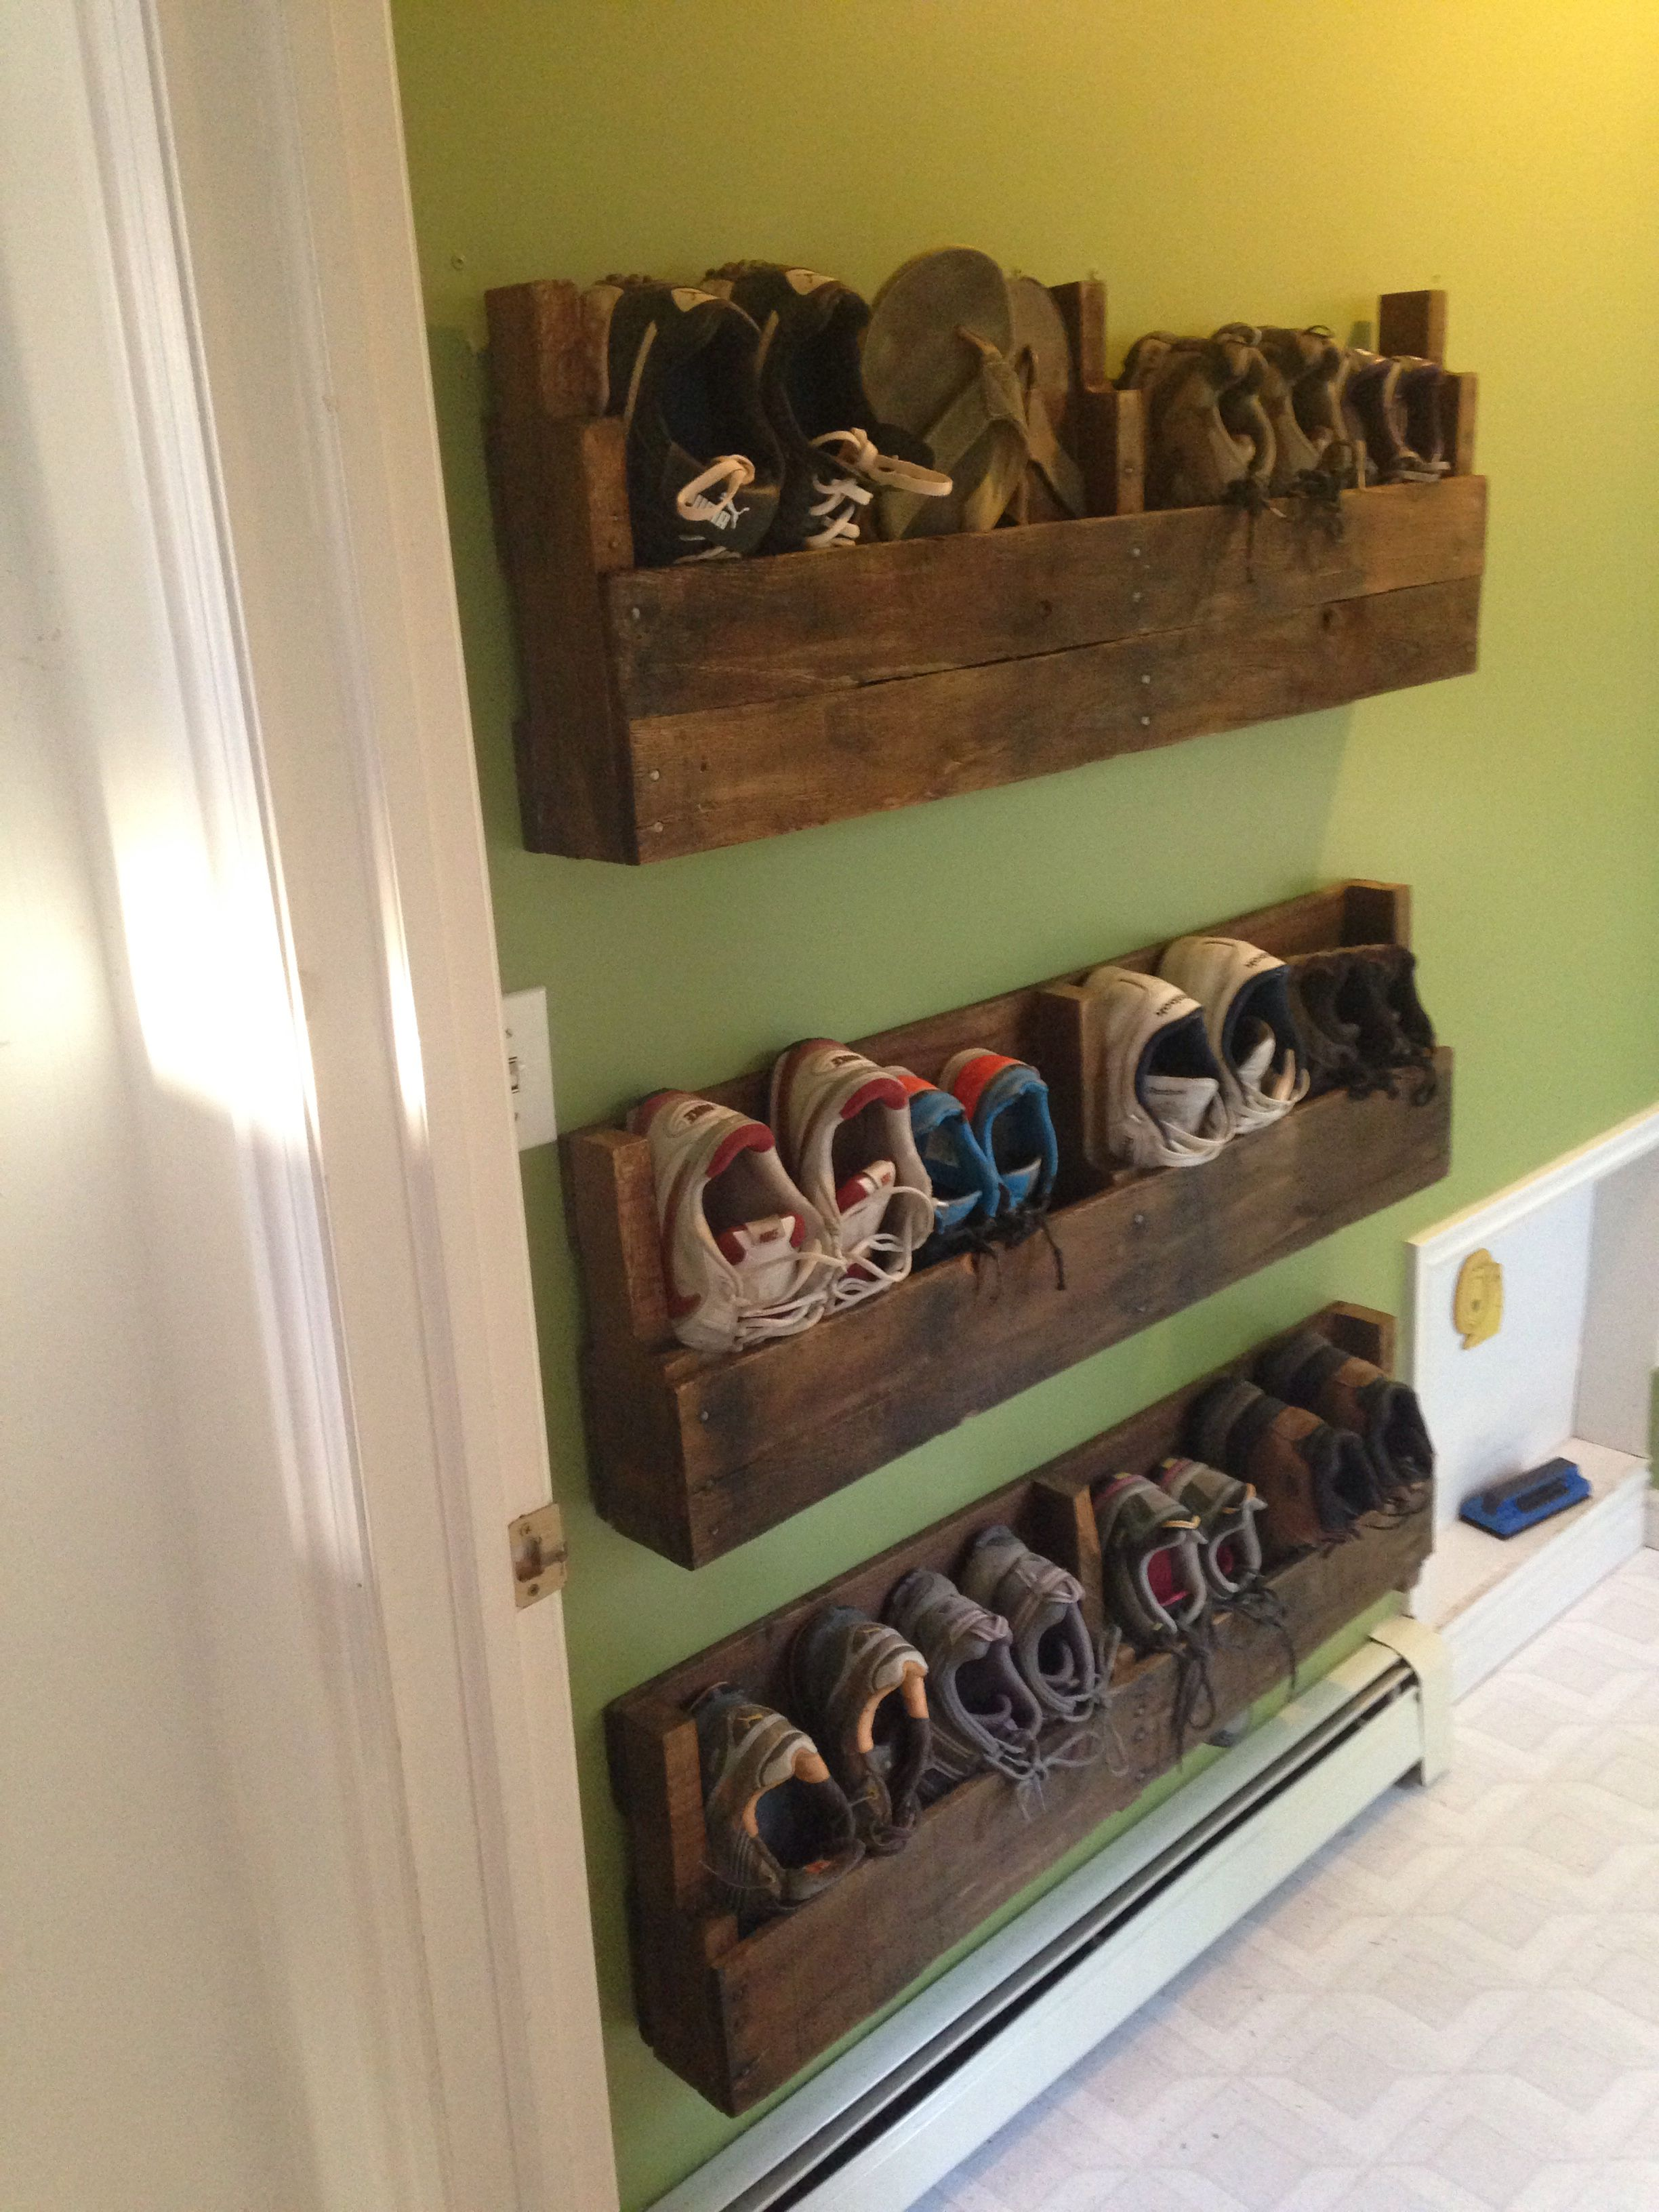 Scarpiere Di Lusso Dyi Shoe Rack Made Out Of Pallets Project I Have Been Trying To